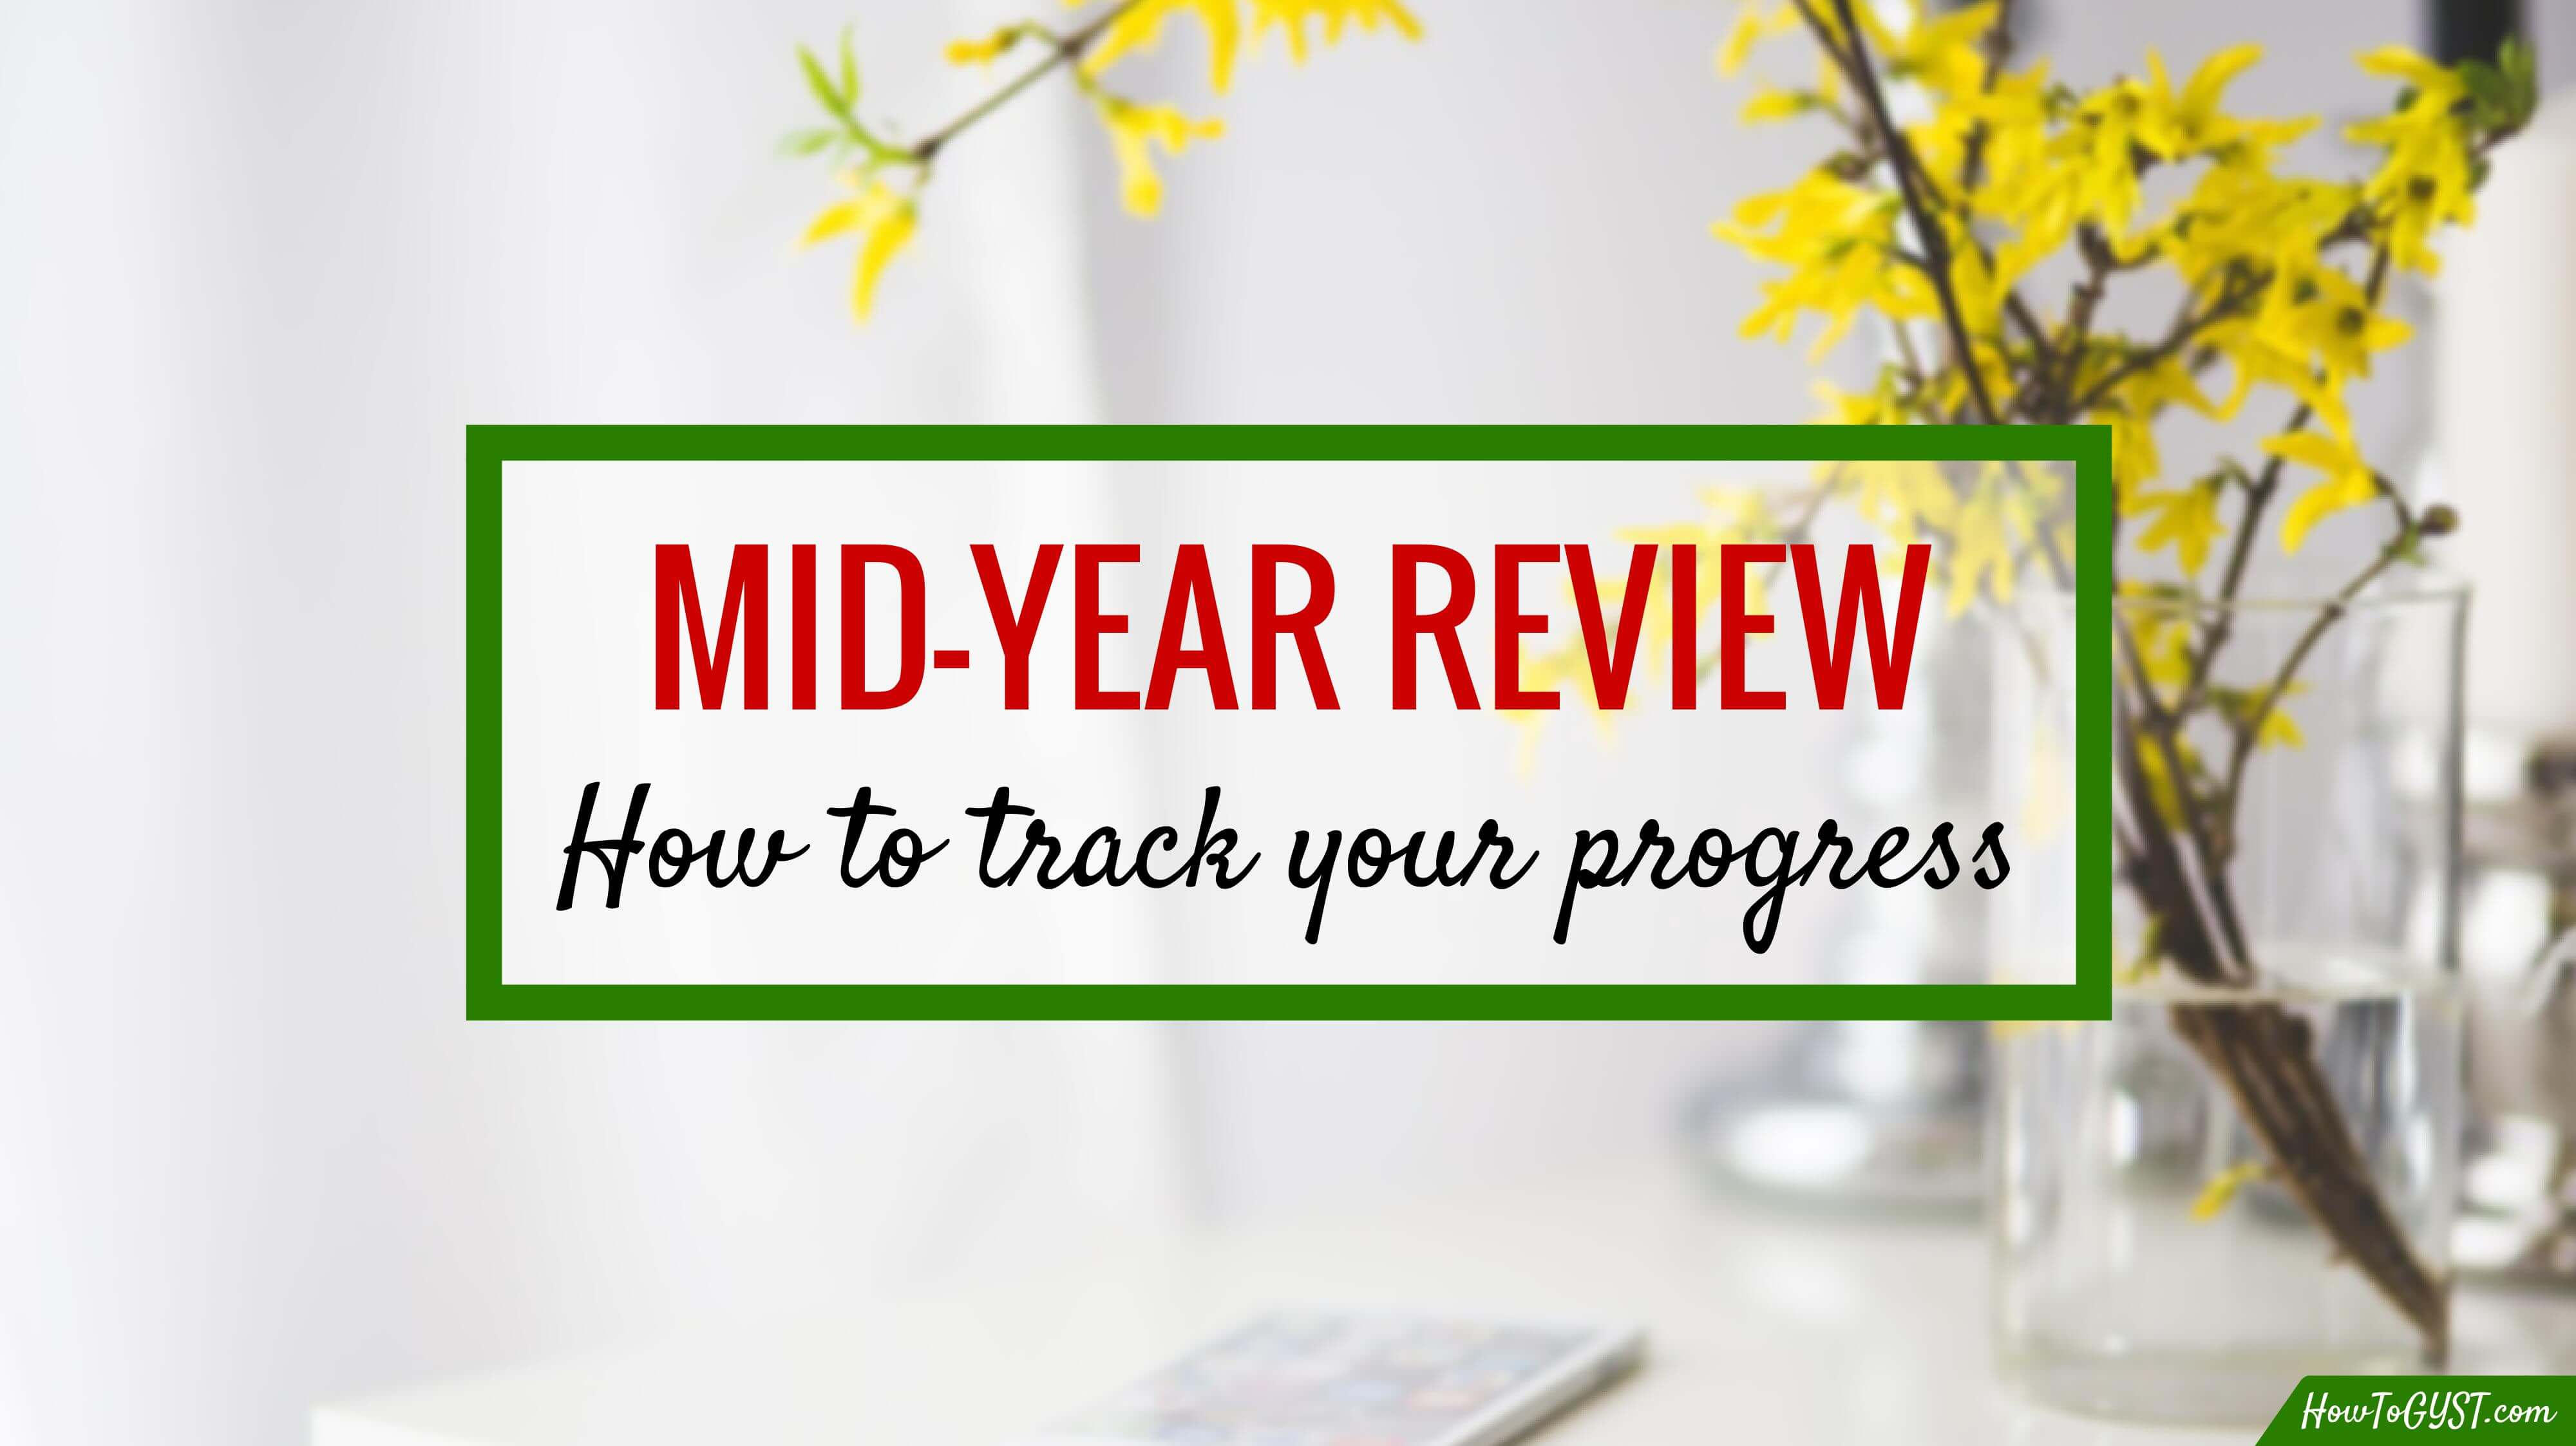 Mid-Year Review [+ FREE WORKSHEET] | HowToGYST.com